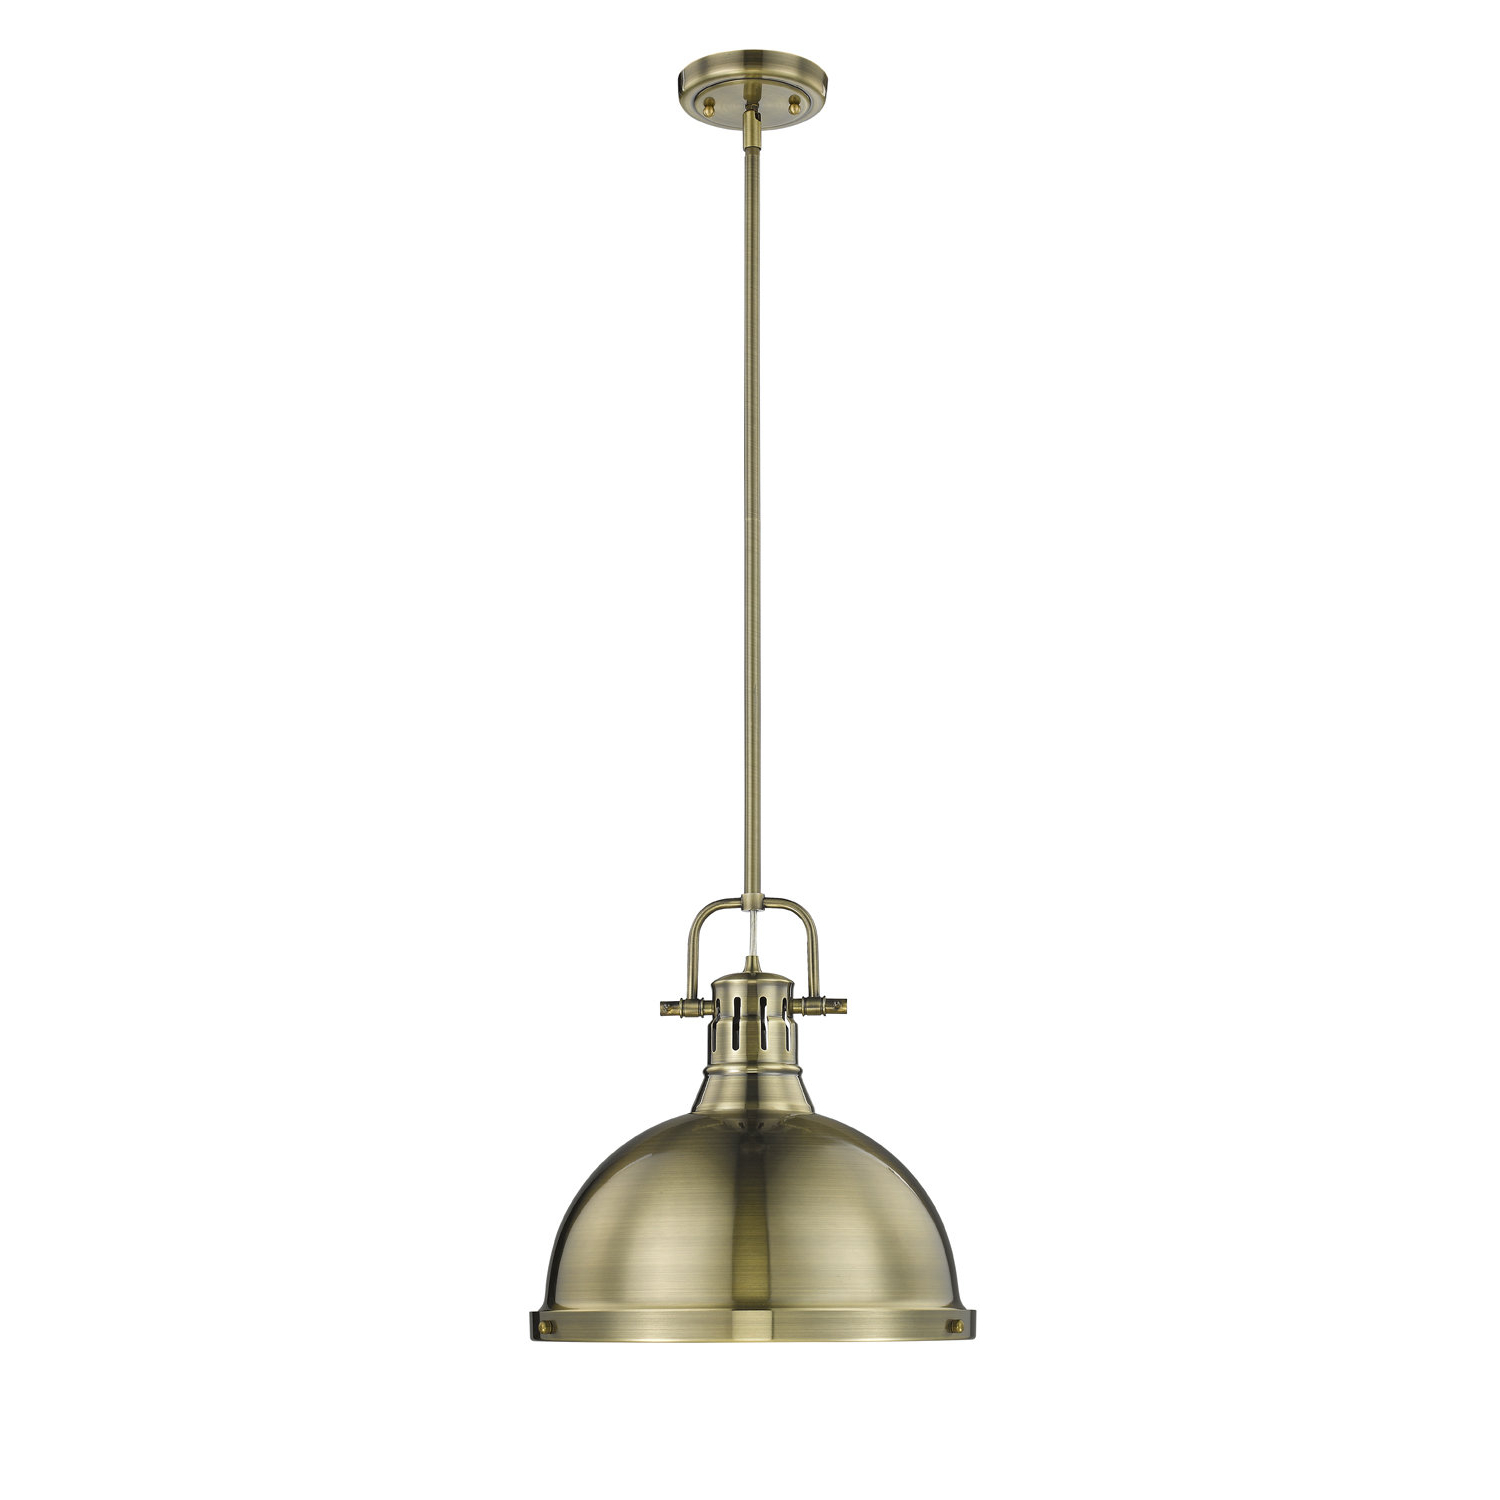 1 Light Single Dome Pendants Intended For Fashionable Bodalla 1 Light Single Dome Pendant (View 10 of 20)